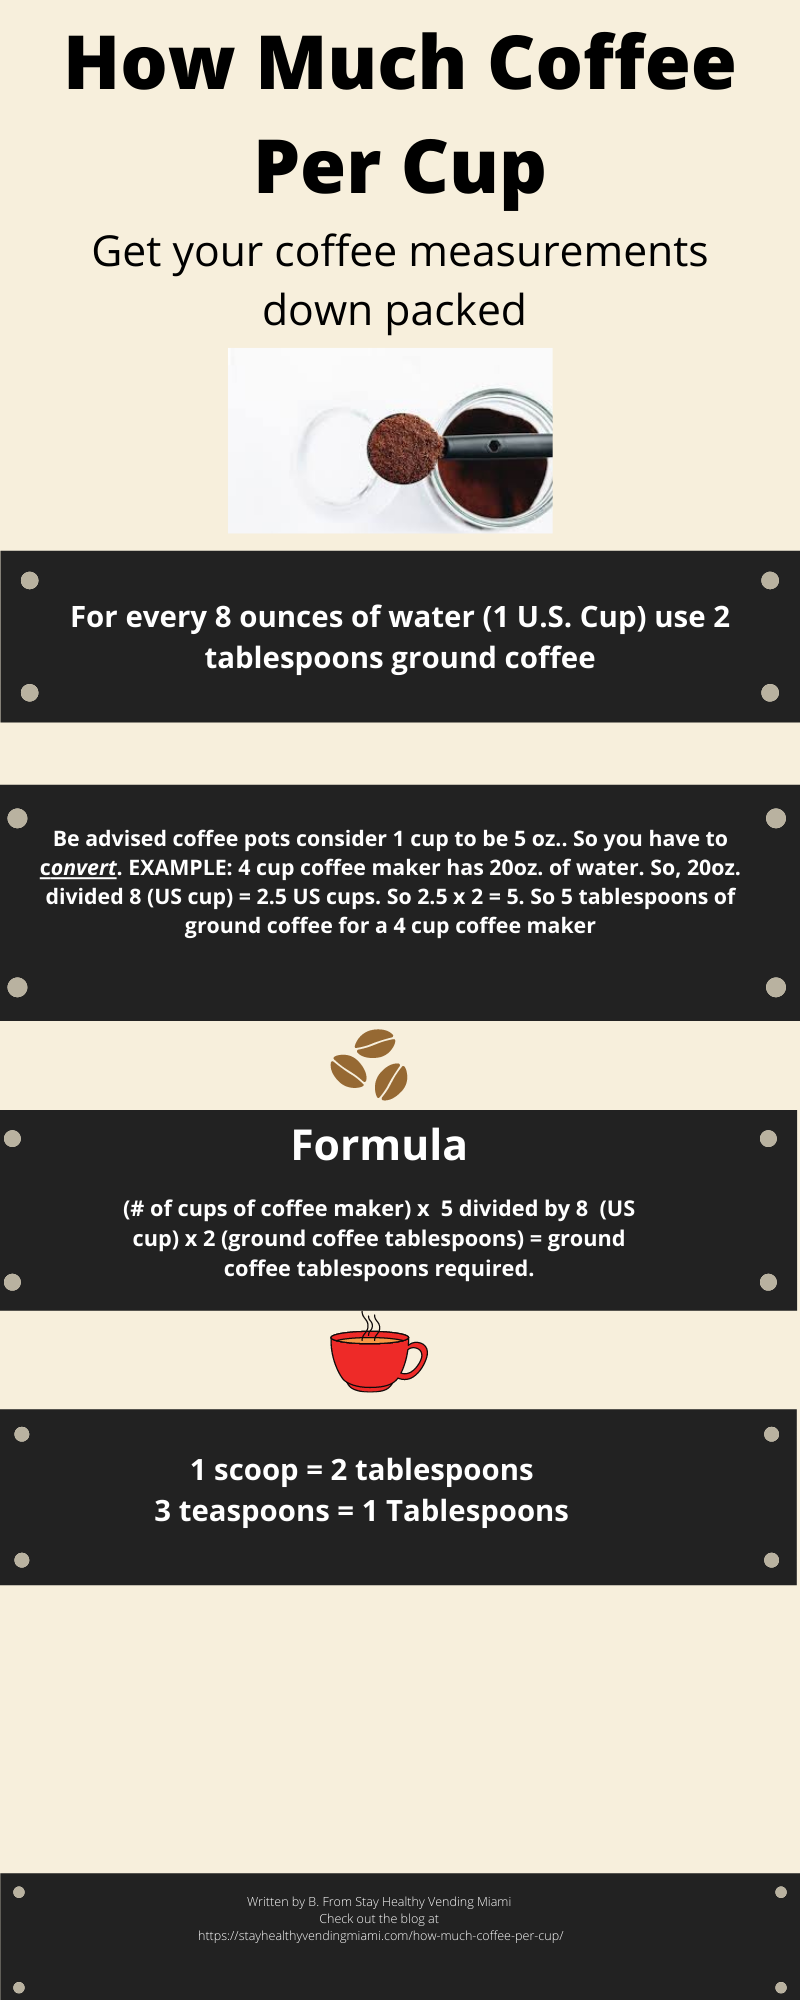 Infographic of How Much Coffee Per Cup. Illustrating how much coffee is needed